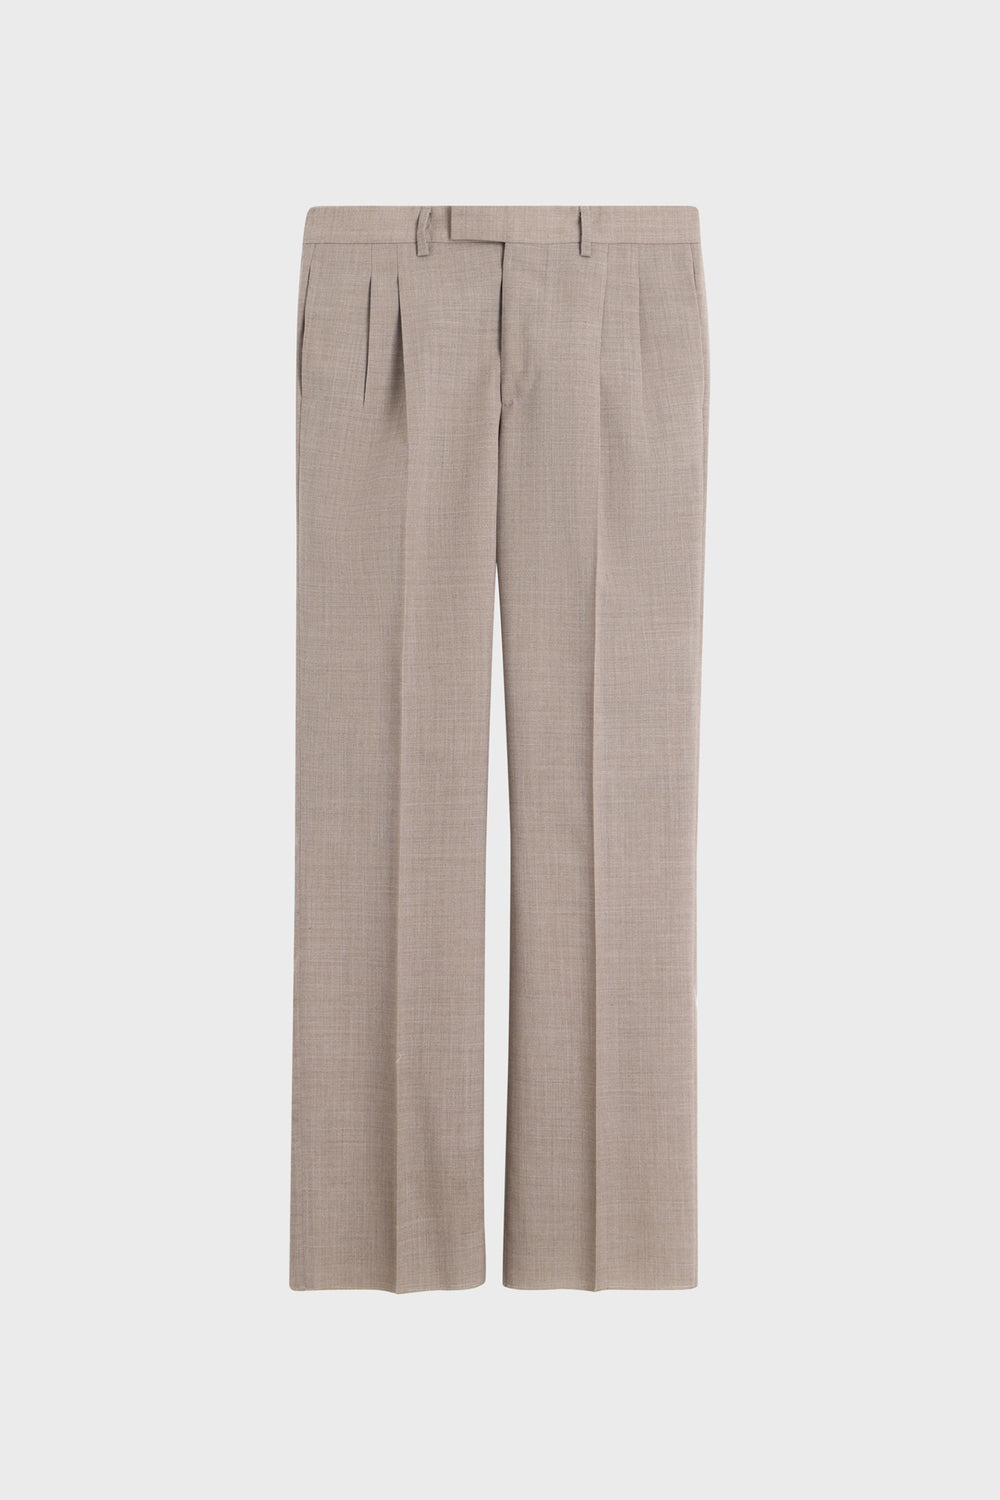 product-color-Prospector Suit Pants